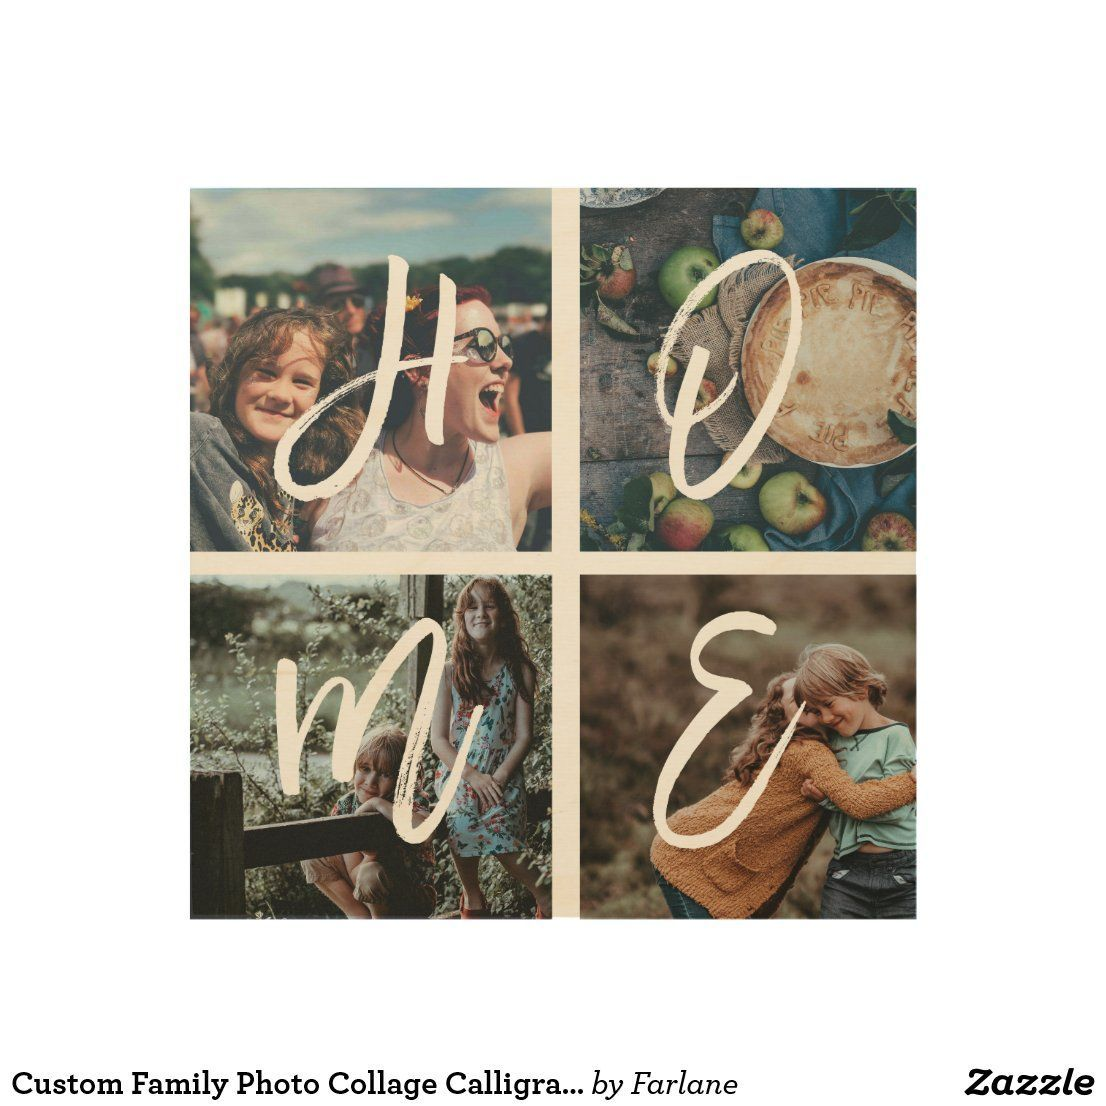 Custom Family Photo Collage Calligraphy HOME Wood Wall Decor | Zazzle.com #photowallcollage Custom Family Photo Collage Calligraphy HOME Wood Wall Decor #wallcollage